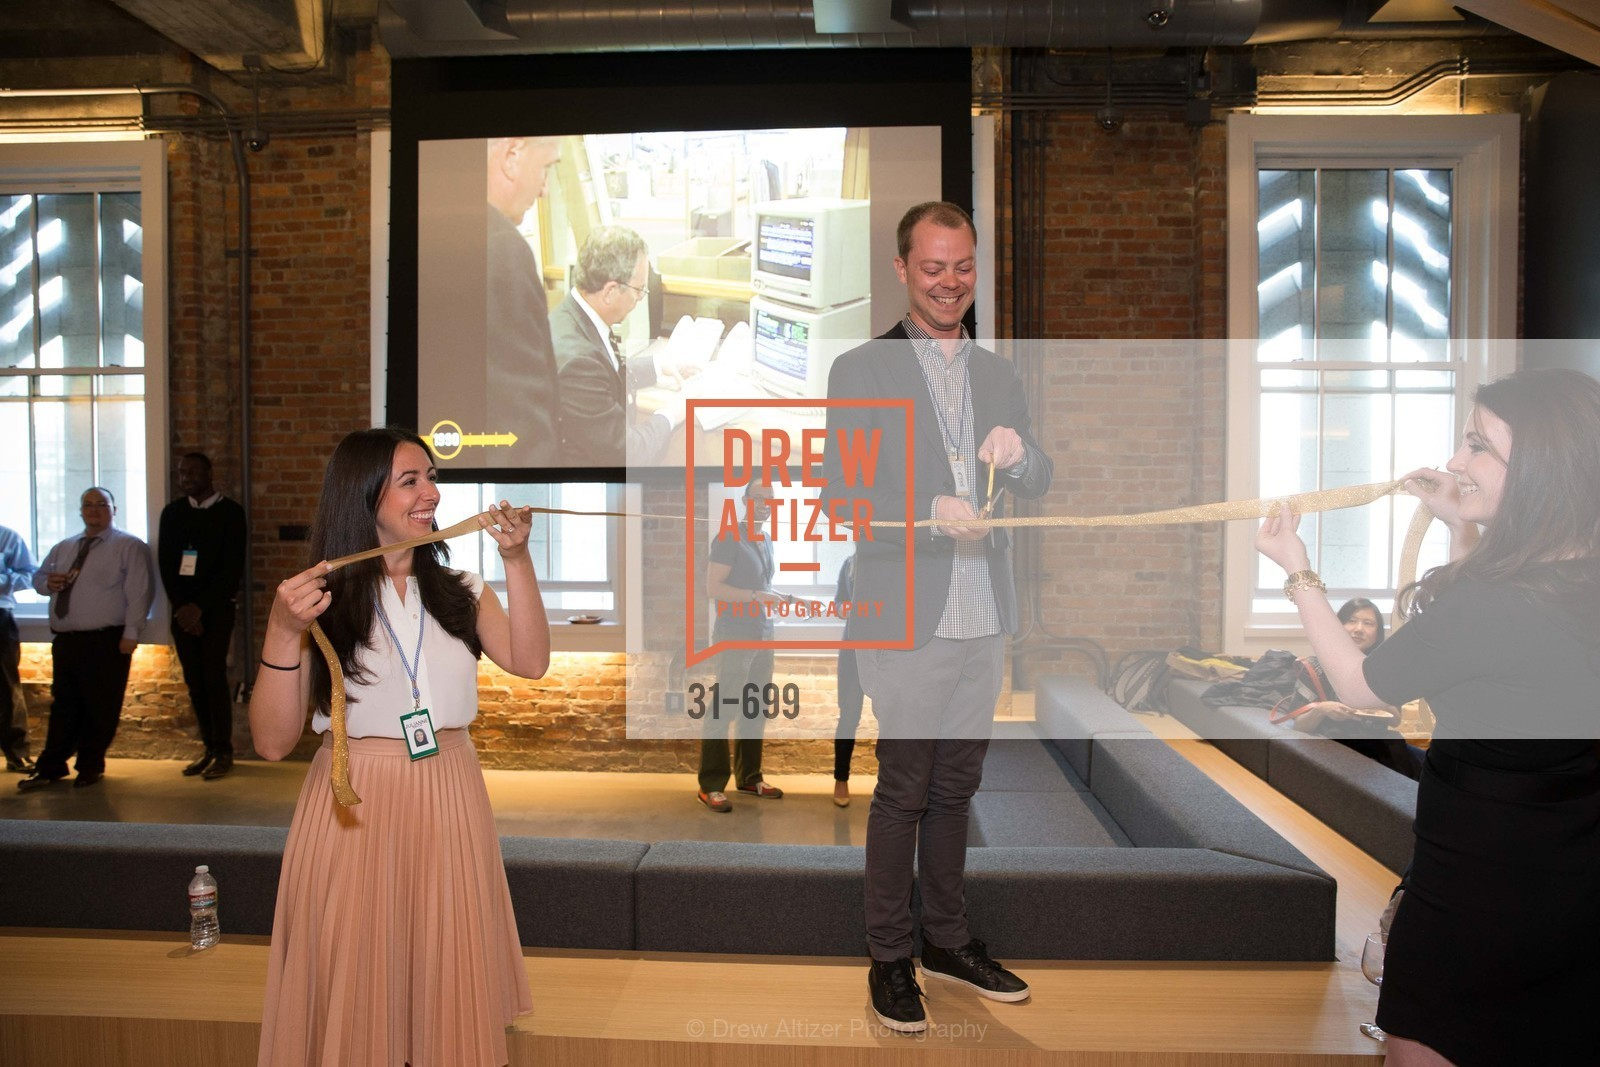 Zach Haehn, BLOOMBERG Office Opening, US, May 7th, 2015,Drew Altizer, Drew Altizer Photography, full-service event agency, private events, San Francisco photographer, photographer California